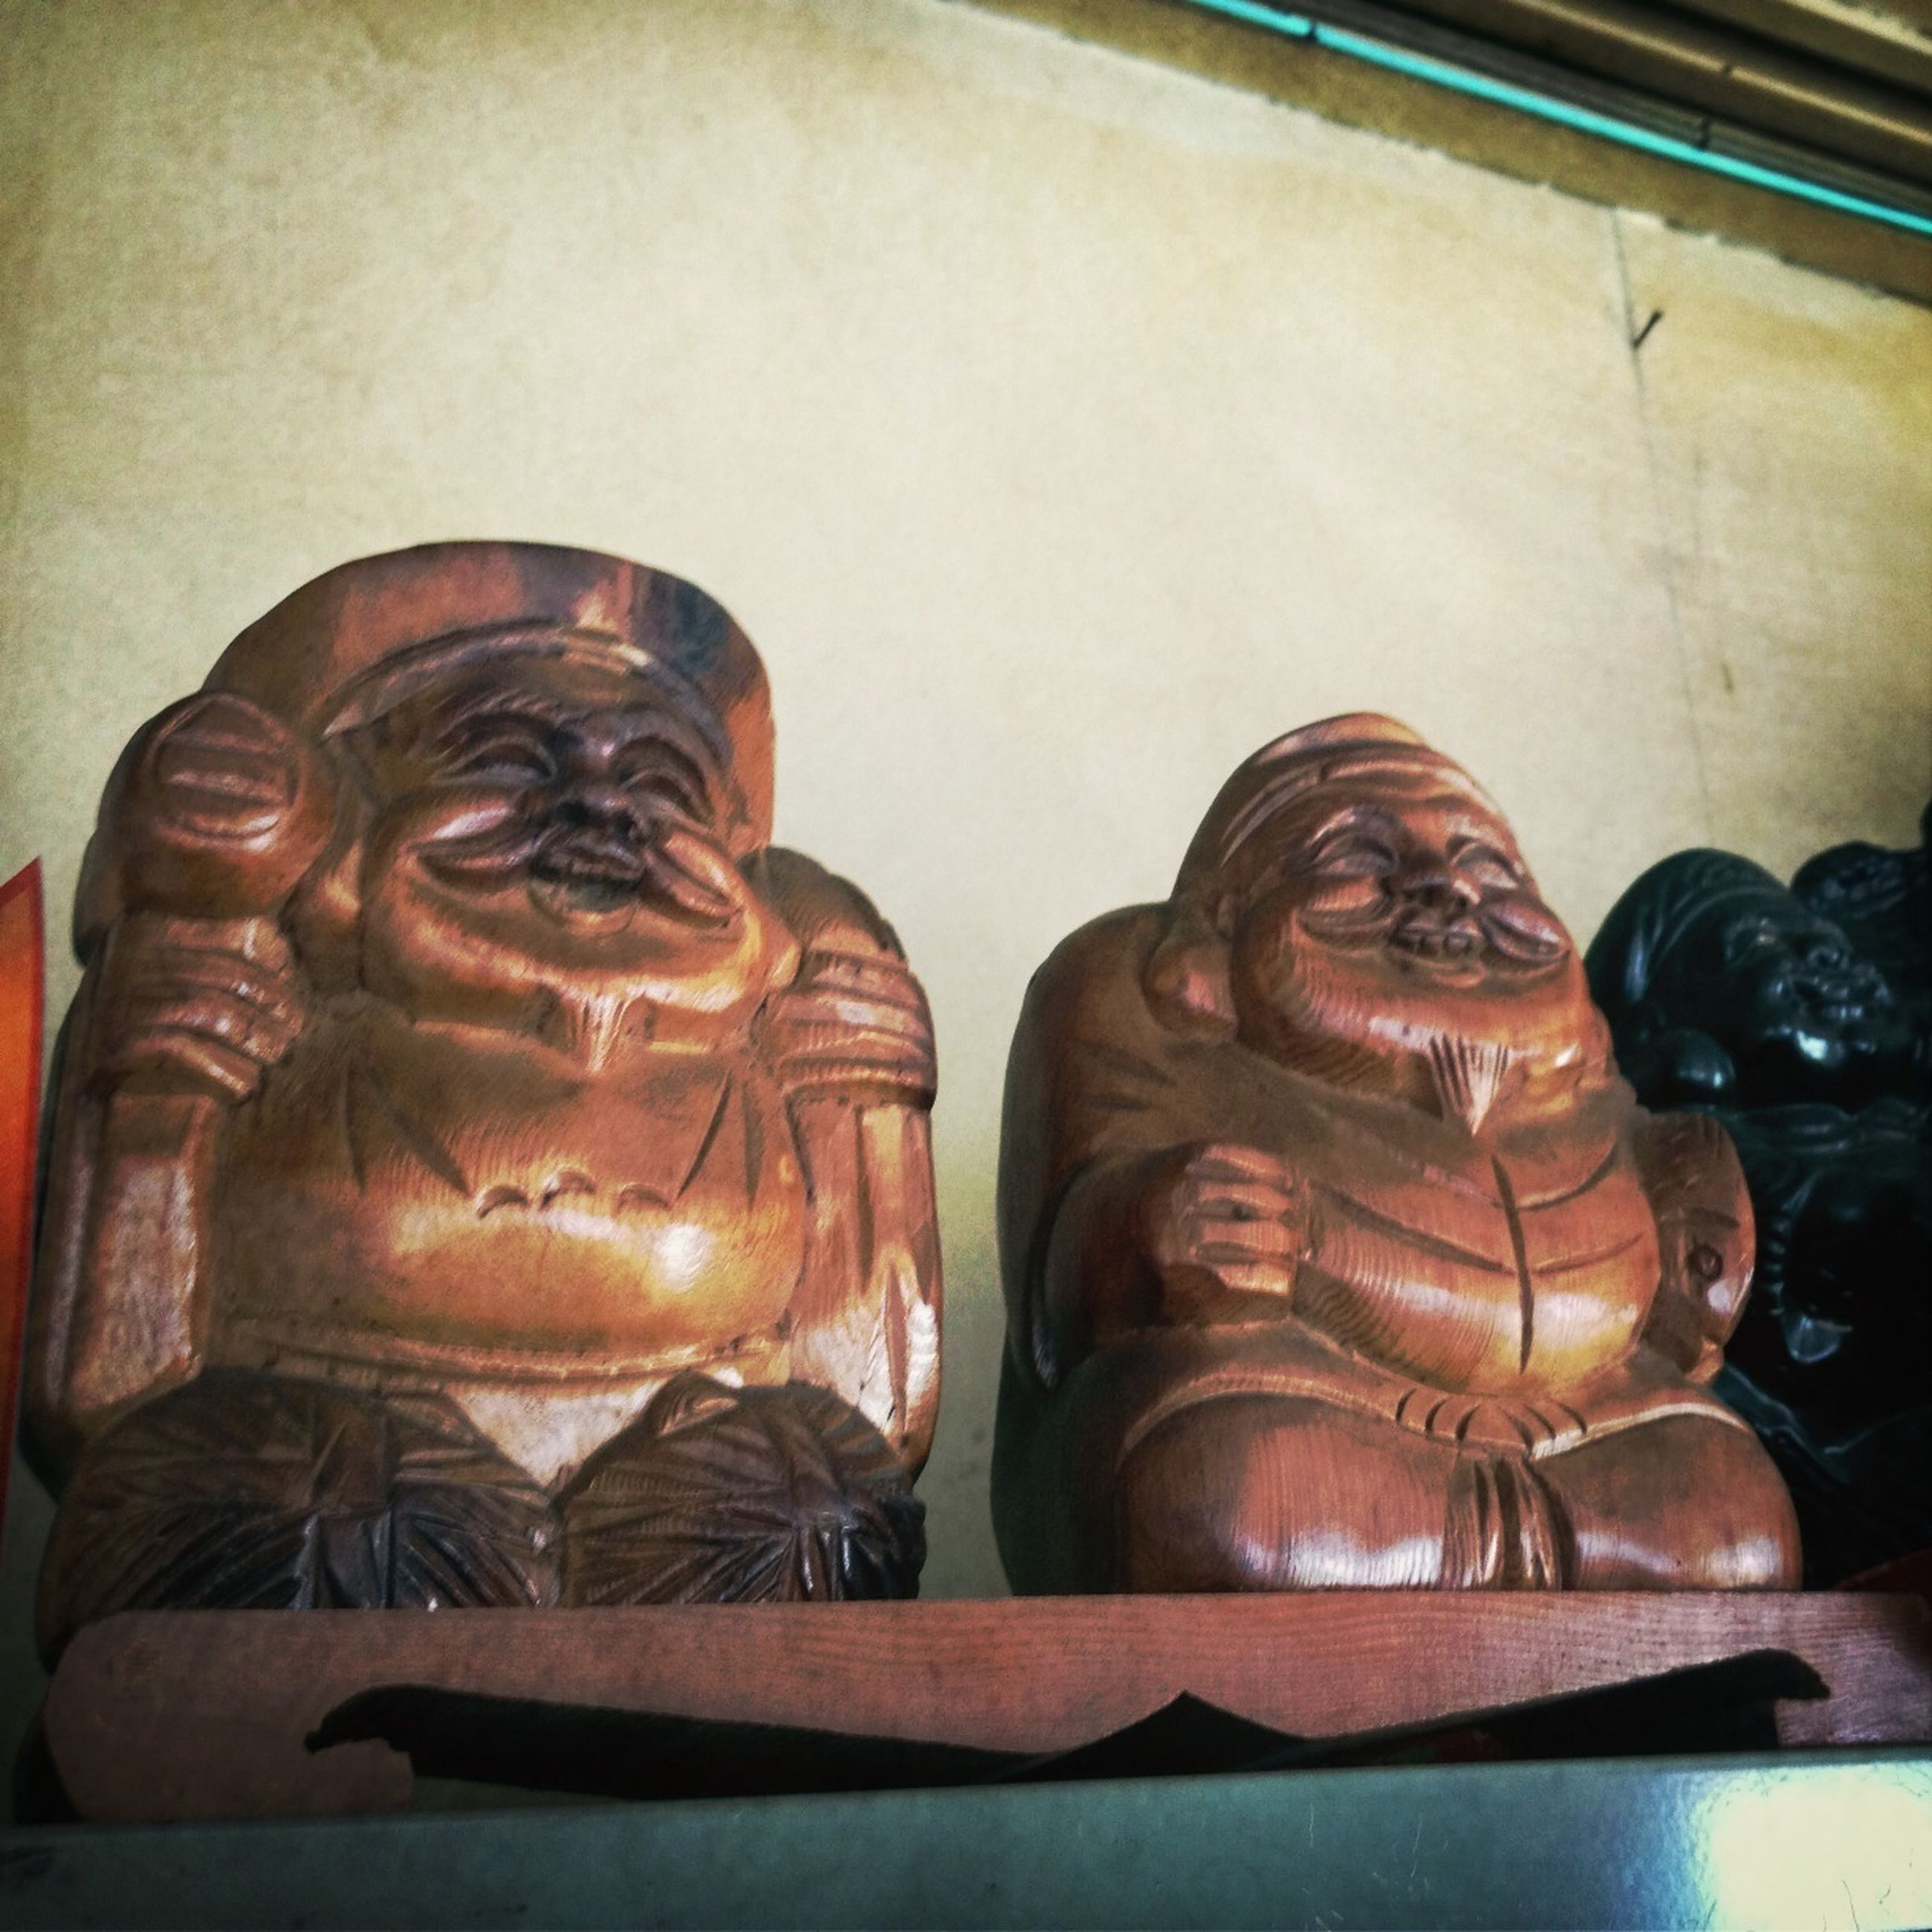 human representation, art, statue, art and craft, sculpture, creativity, indoors, carving - craft product, buddha, animal representation, religion, ornate, temple - building, craft, spirituality, gold colored, place of worship